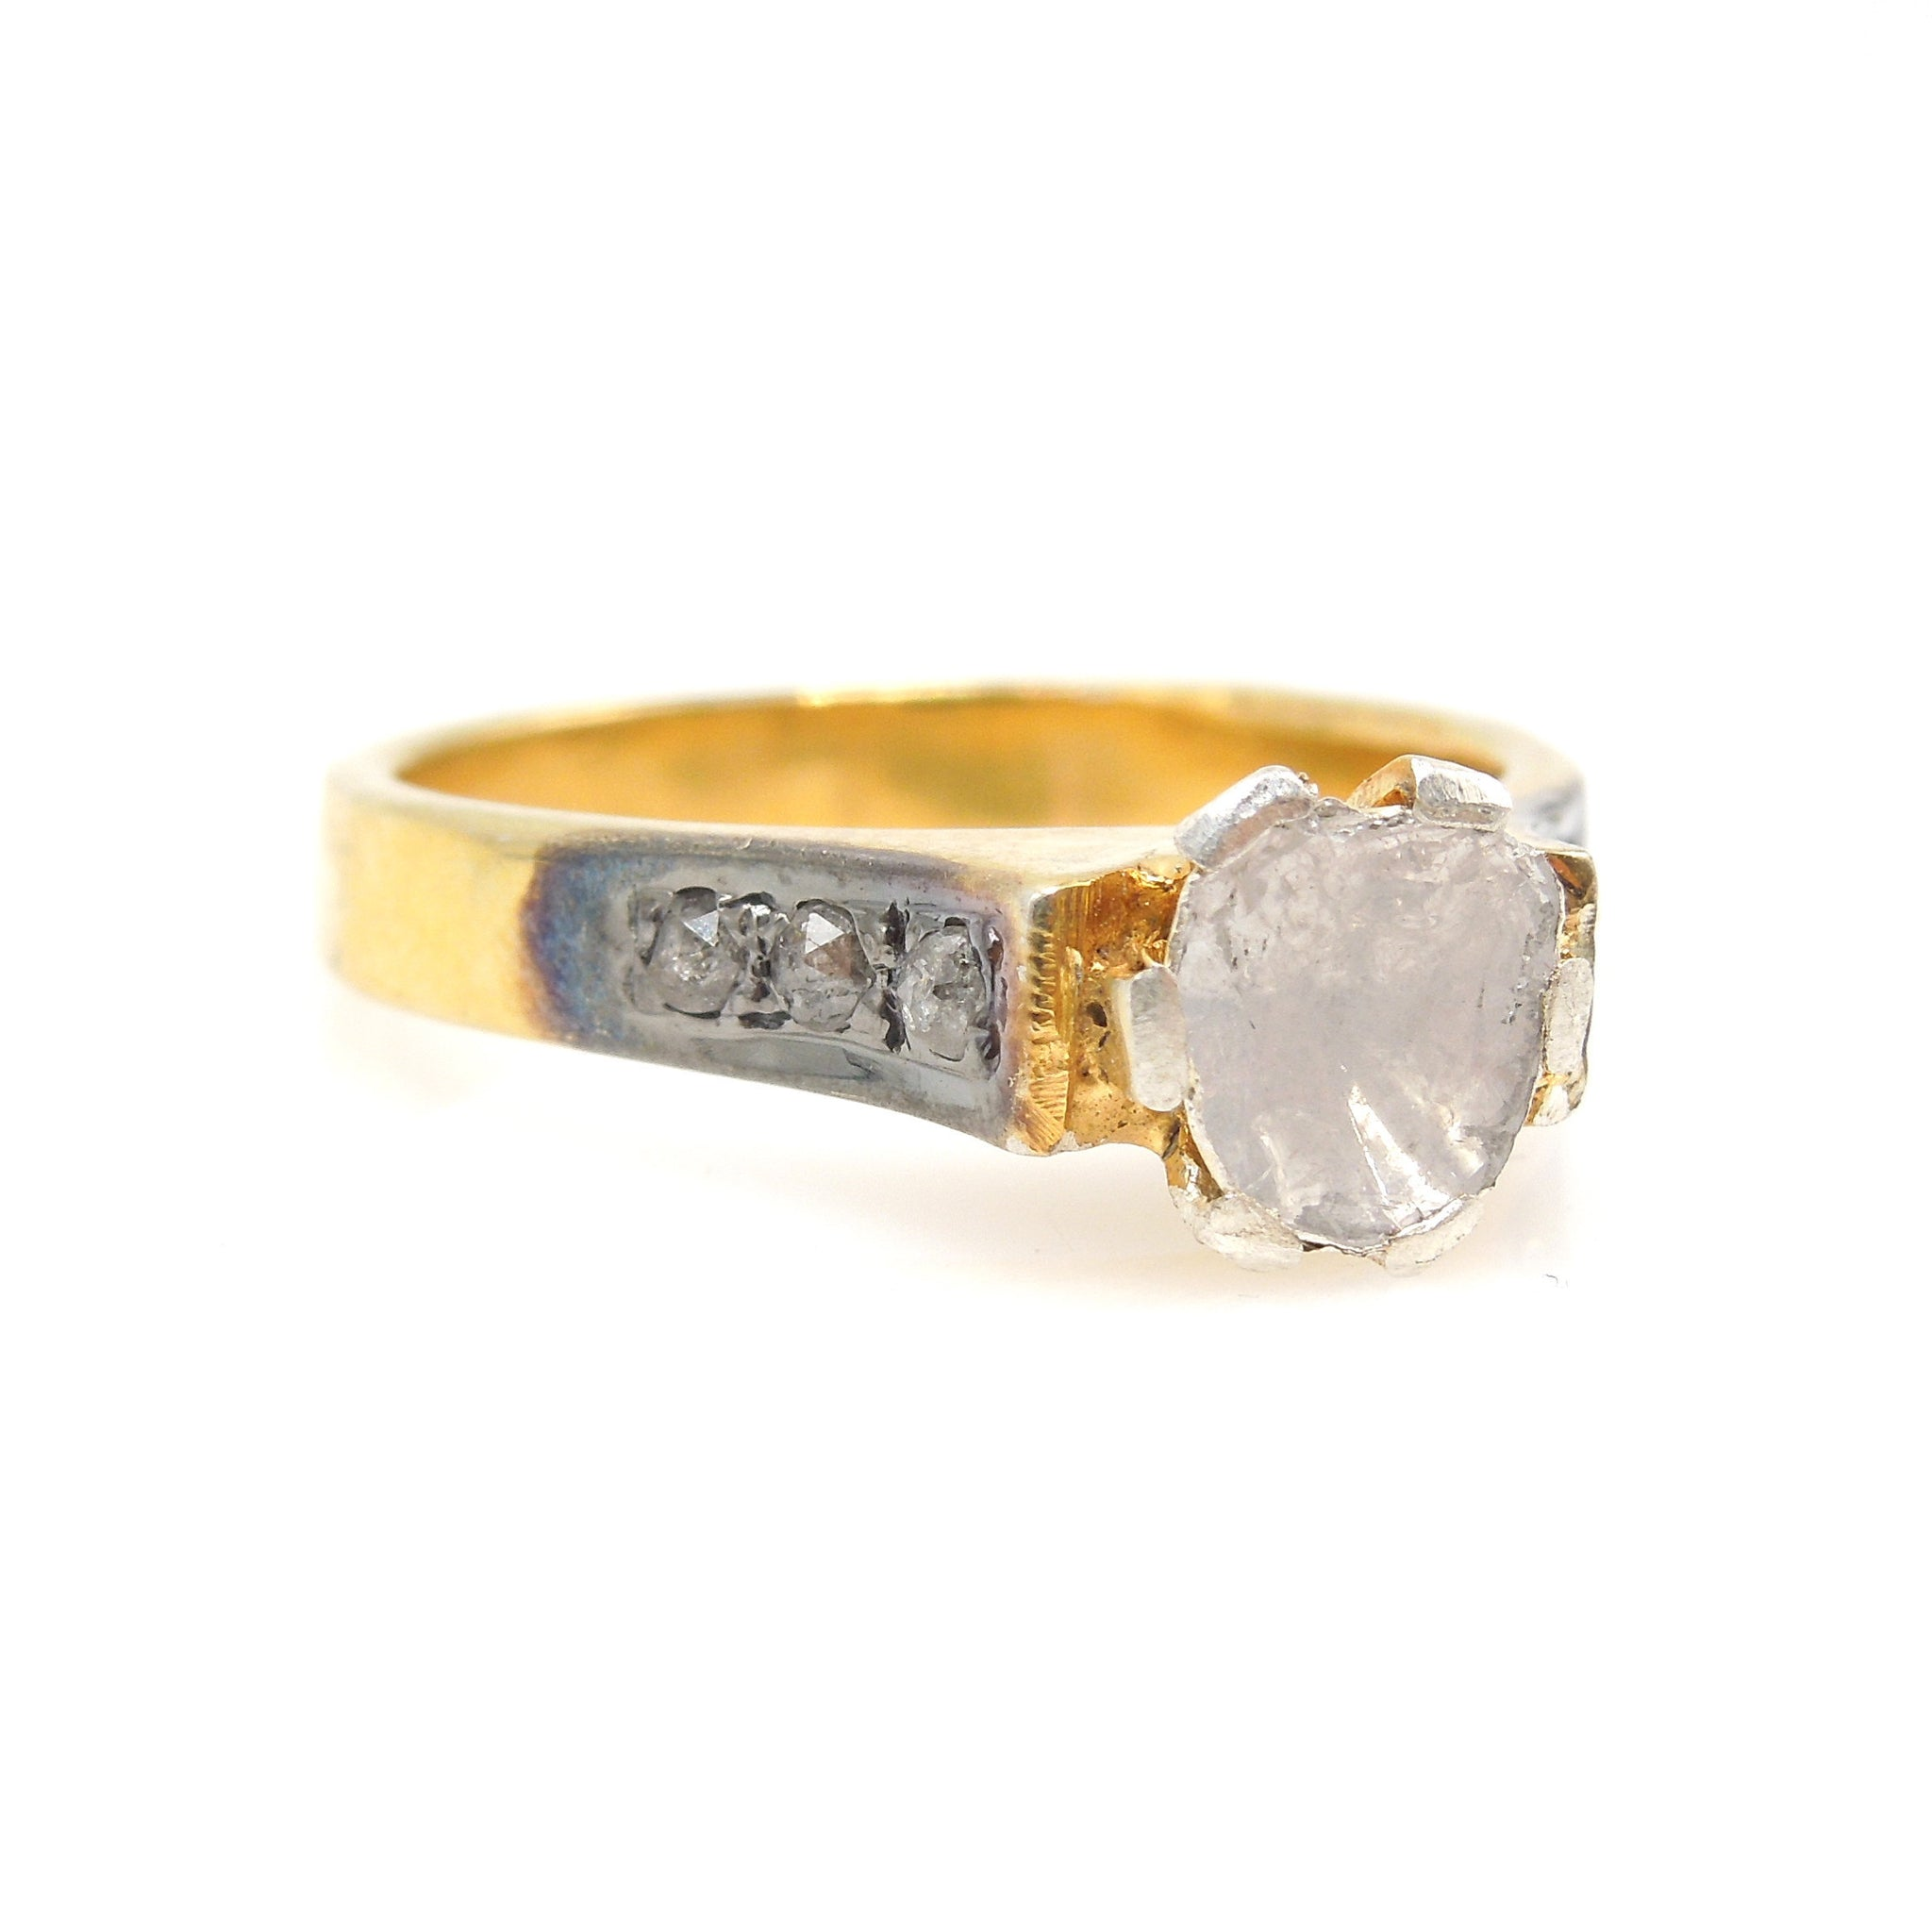 Vermeil Macle Salt and Pepper Diamond Ring - Gold and Silver